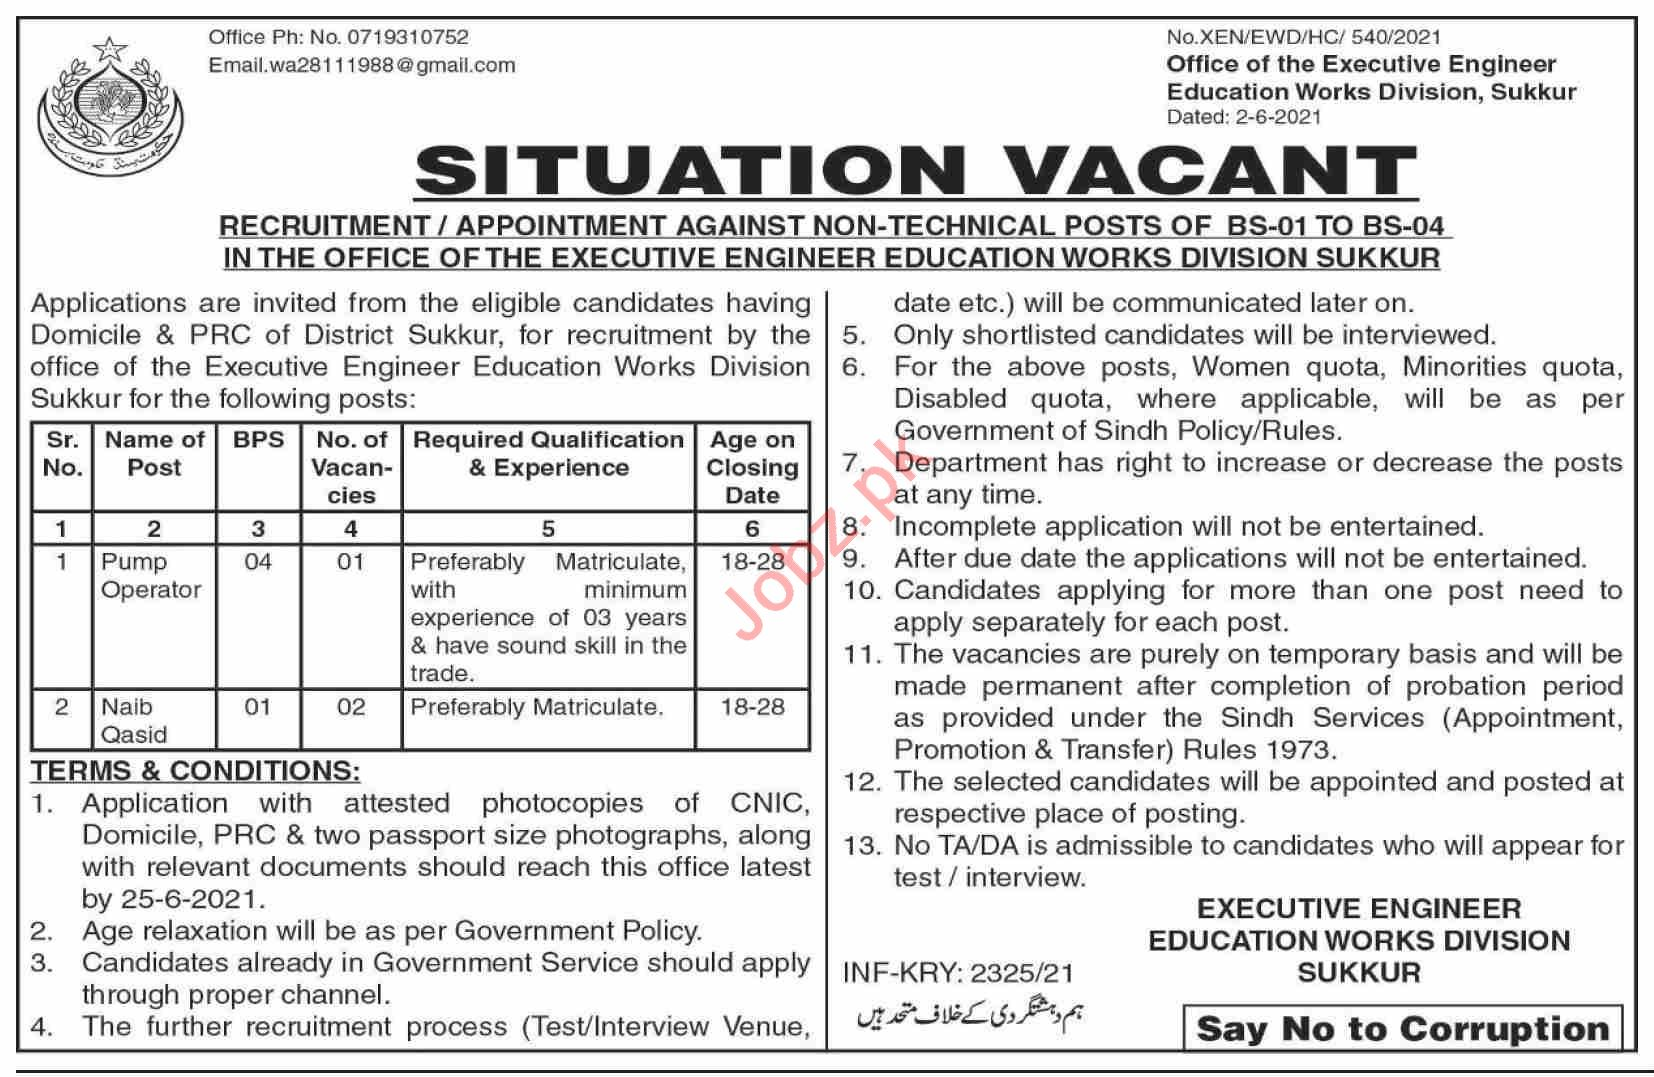 Education Works Division Sukkur Jobs 2021 for Pump Operator